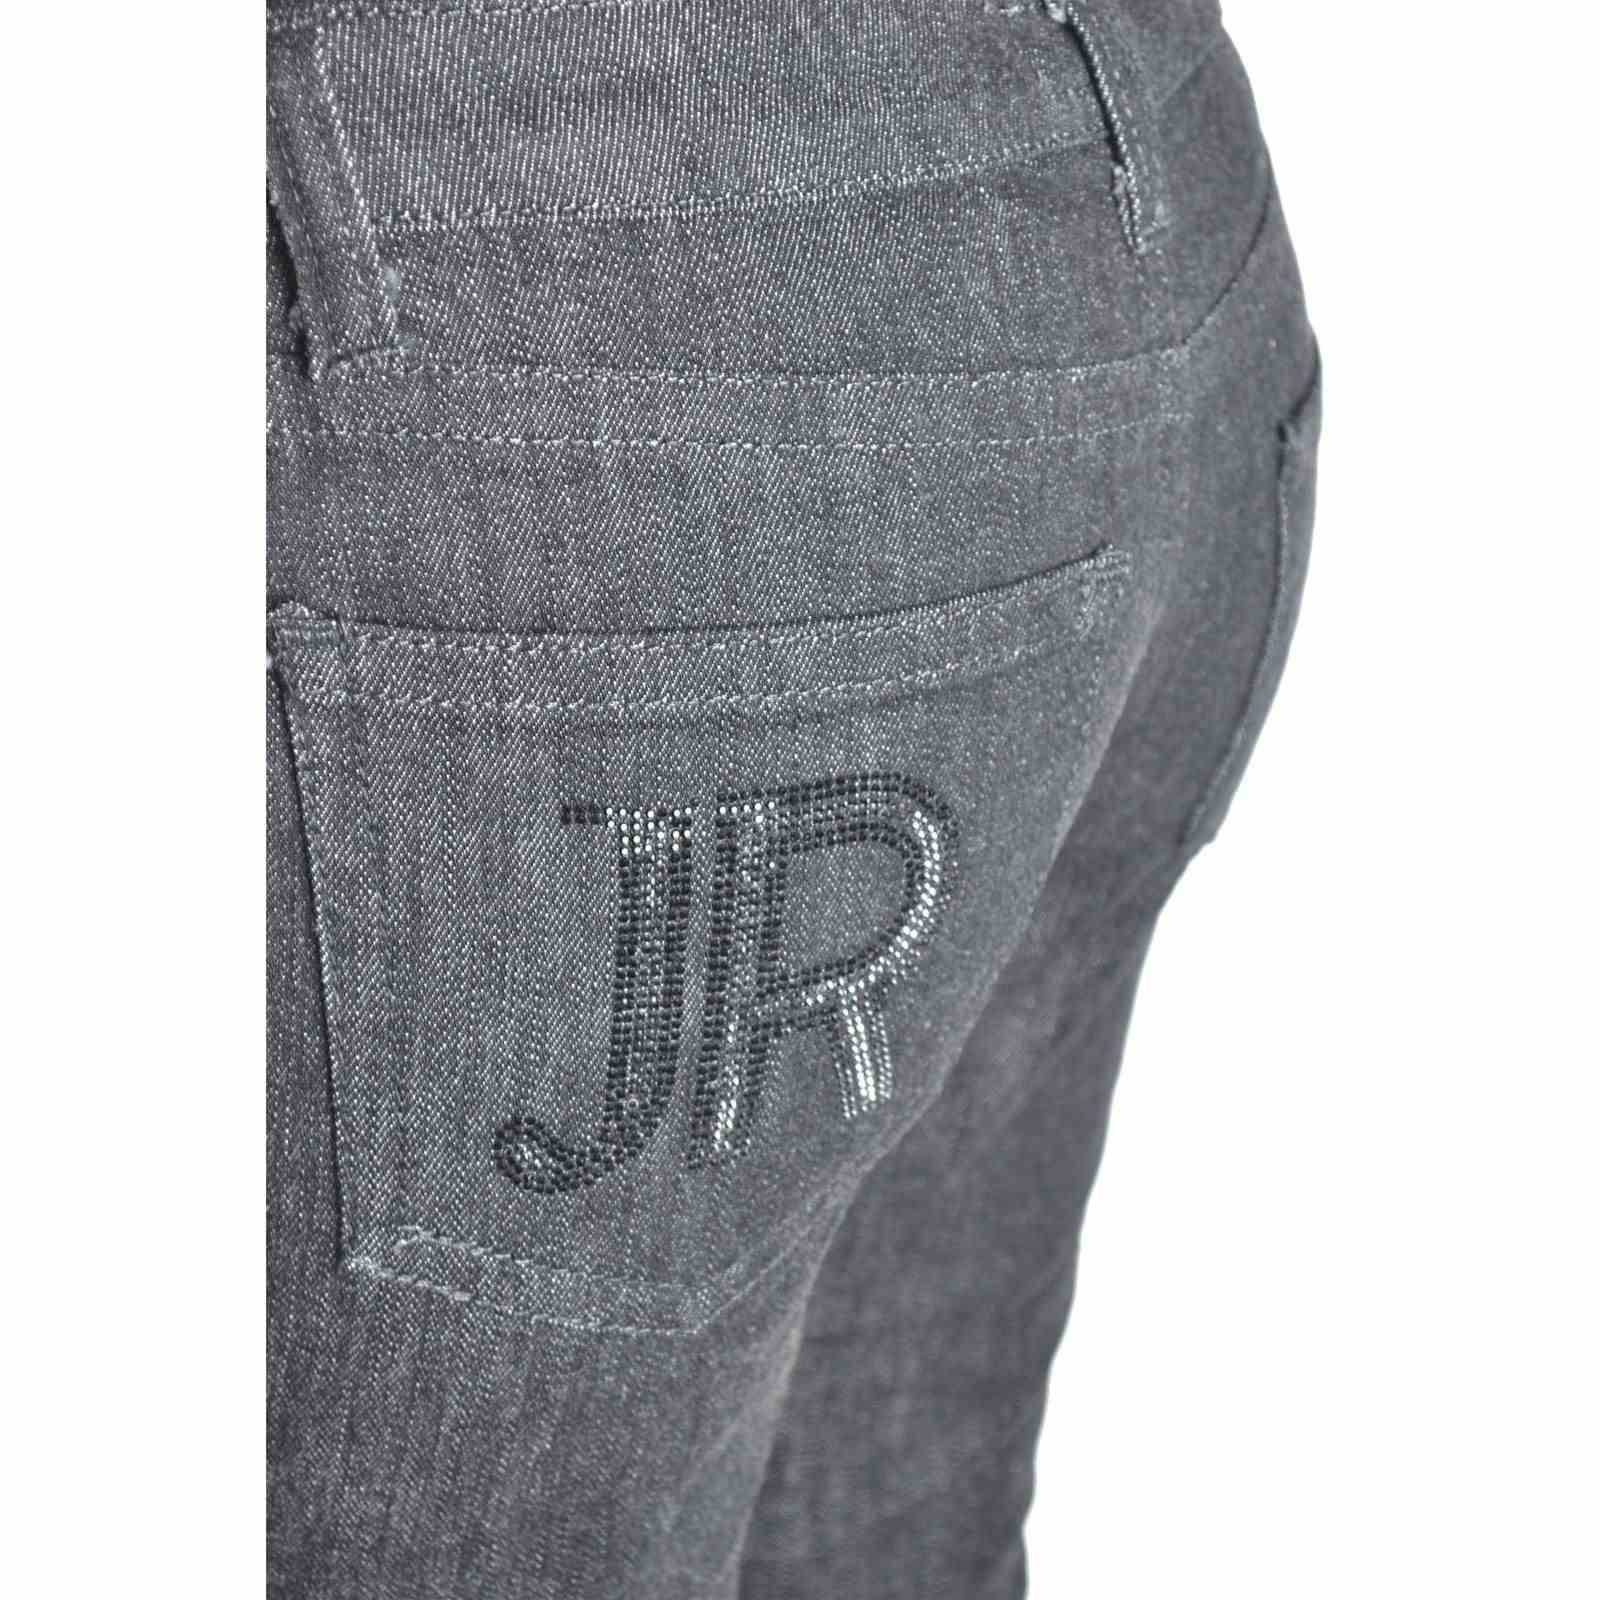 RegularGris Richmond RegularGris Femme Jean Jean Richmond Richmond Femme V Jean V CBordxQWeE